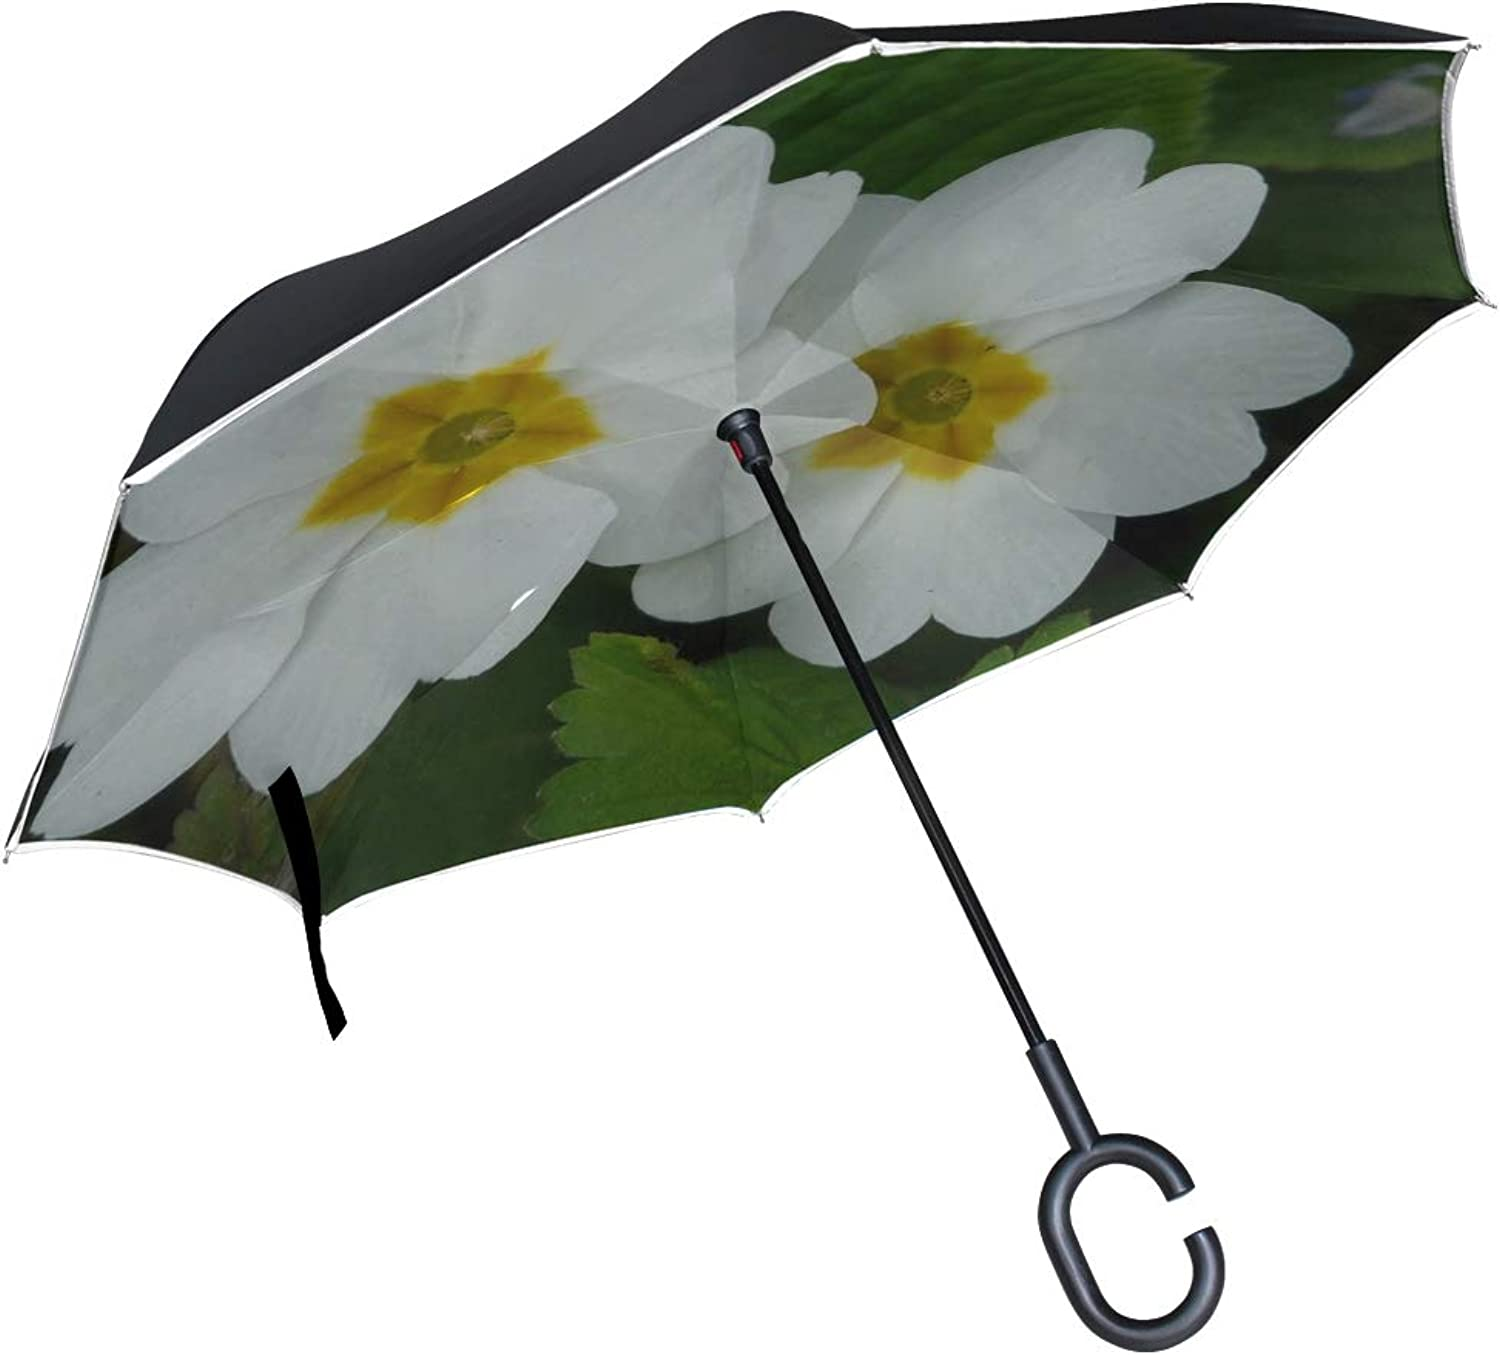 Double Layer Ingreened Primpink Cowslip Plant Garden White color Umbrellas Reverse Folding Umbrella Windproof Uv Predection Big Straight Umbrella for Car Rain Outdoor with CShaped Handle